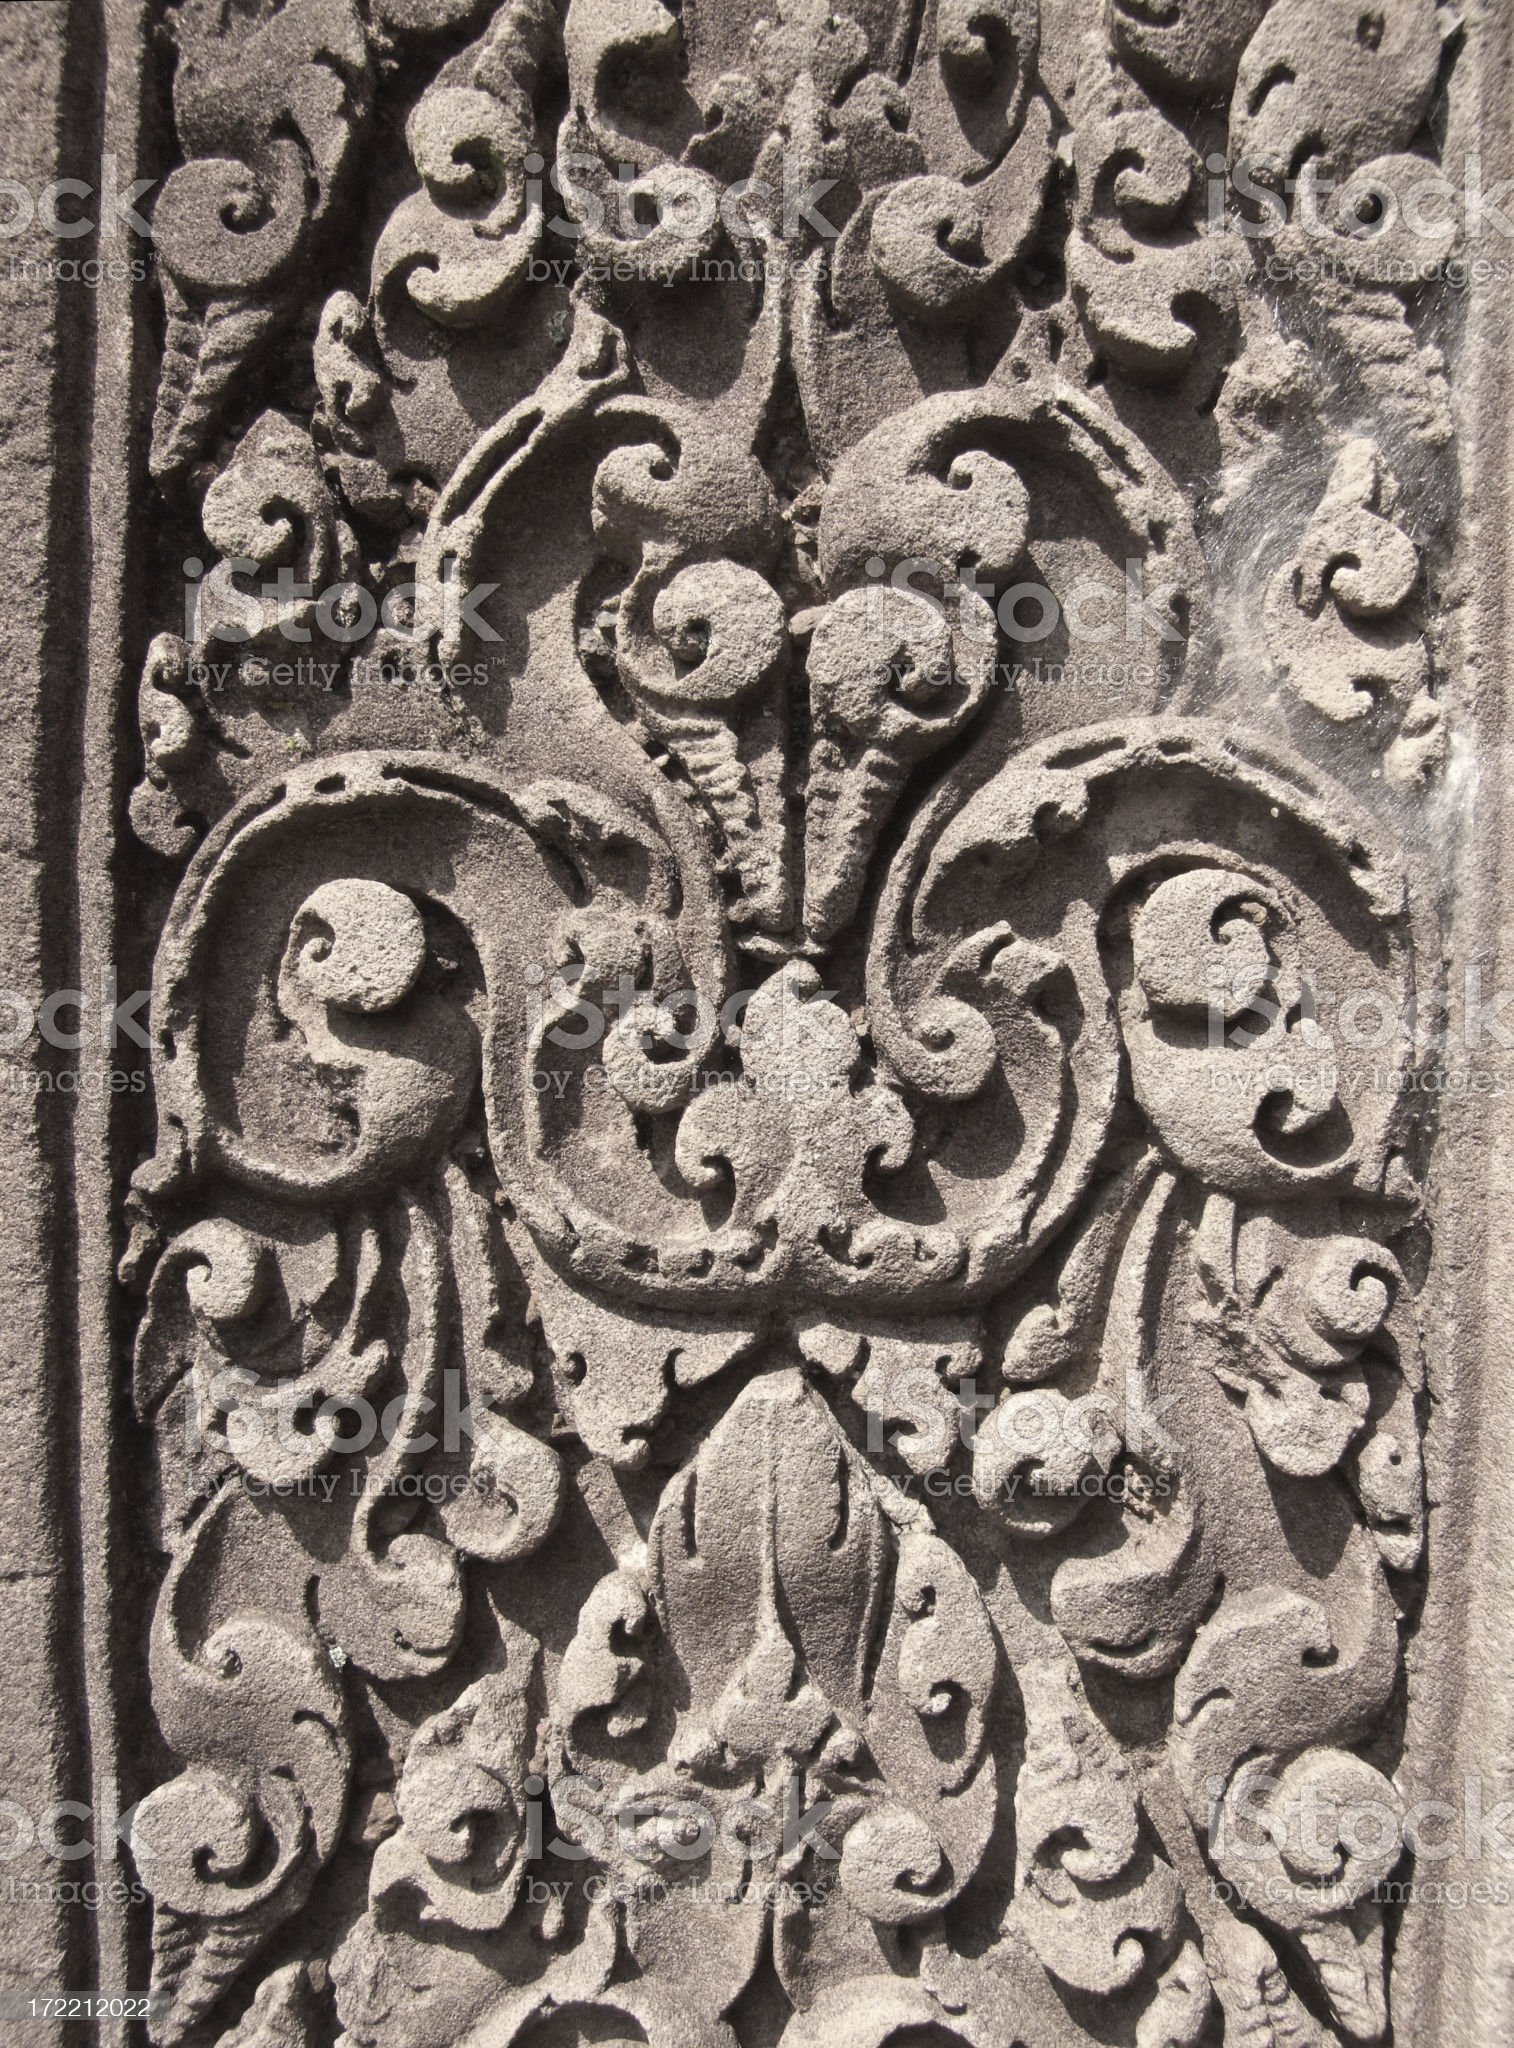 Ancient Stone Carving royalty-free stock photo